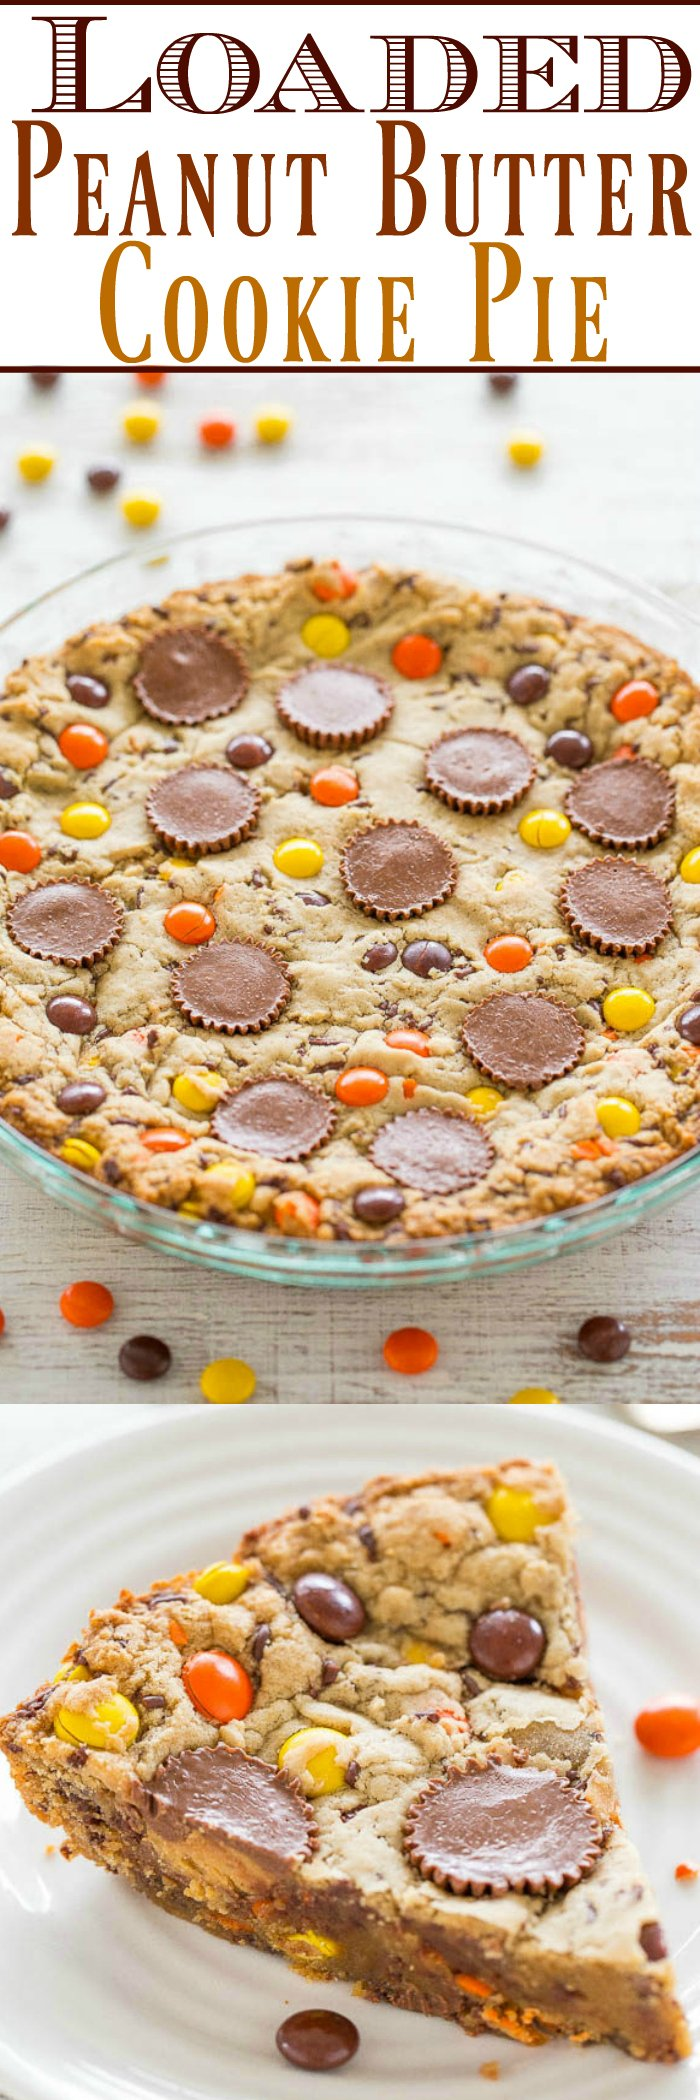 Loaded Peanut Butter Cookie Cake — Peanut butter is used 3 WAYS: In the dough, with peanut butter cups, and Reese's Pieces!! EASY, no mixer, super soft center with chewy edges, and tastes AMAZING!!